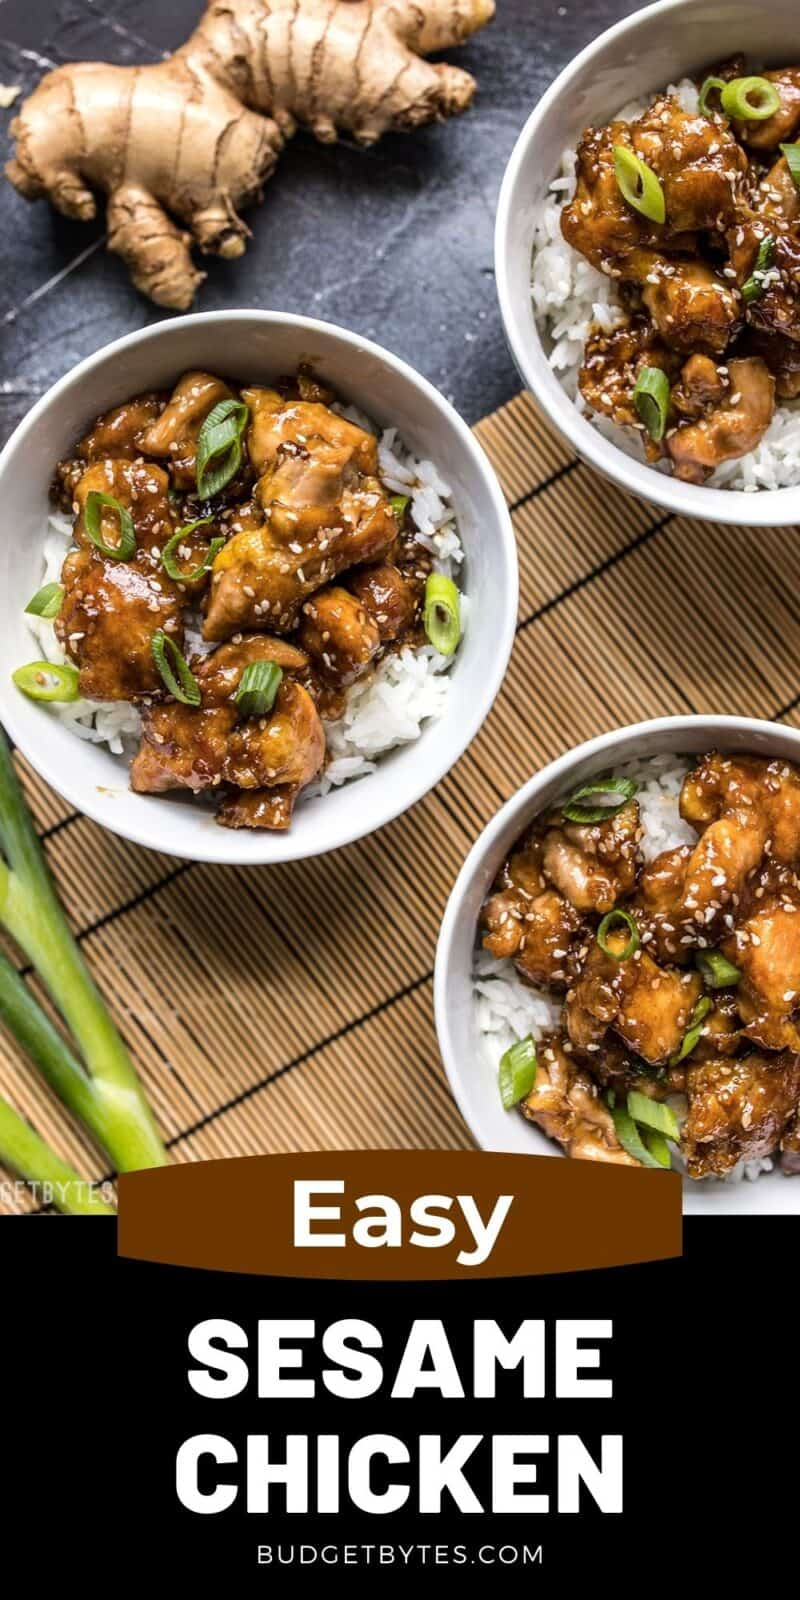 Three bowls of sesame chicken and rice, title text at the bottom